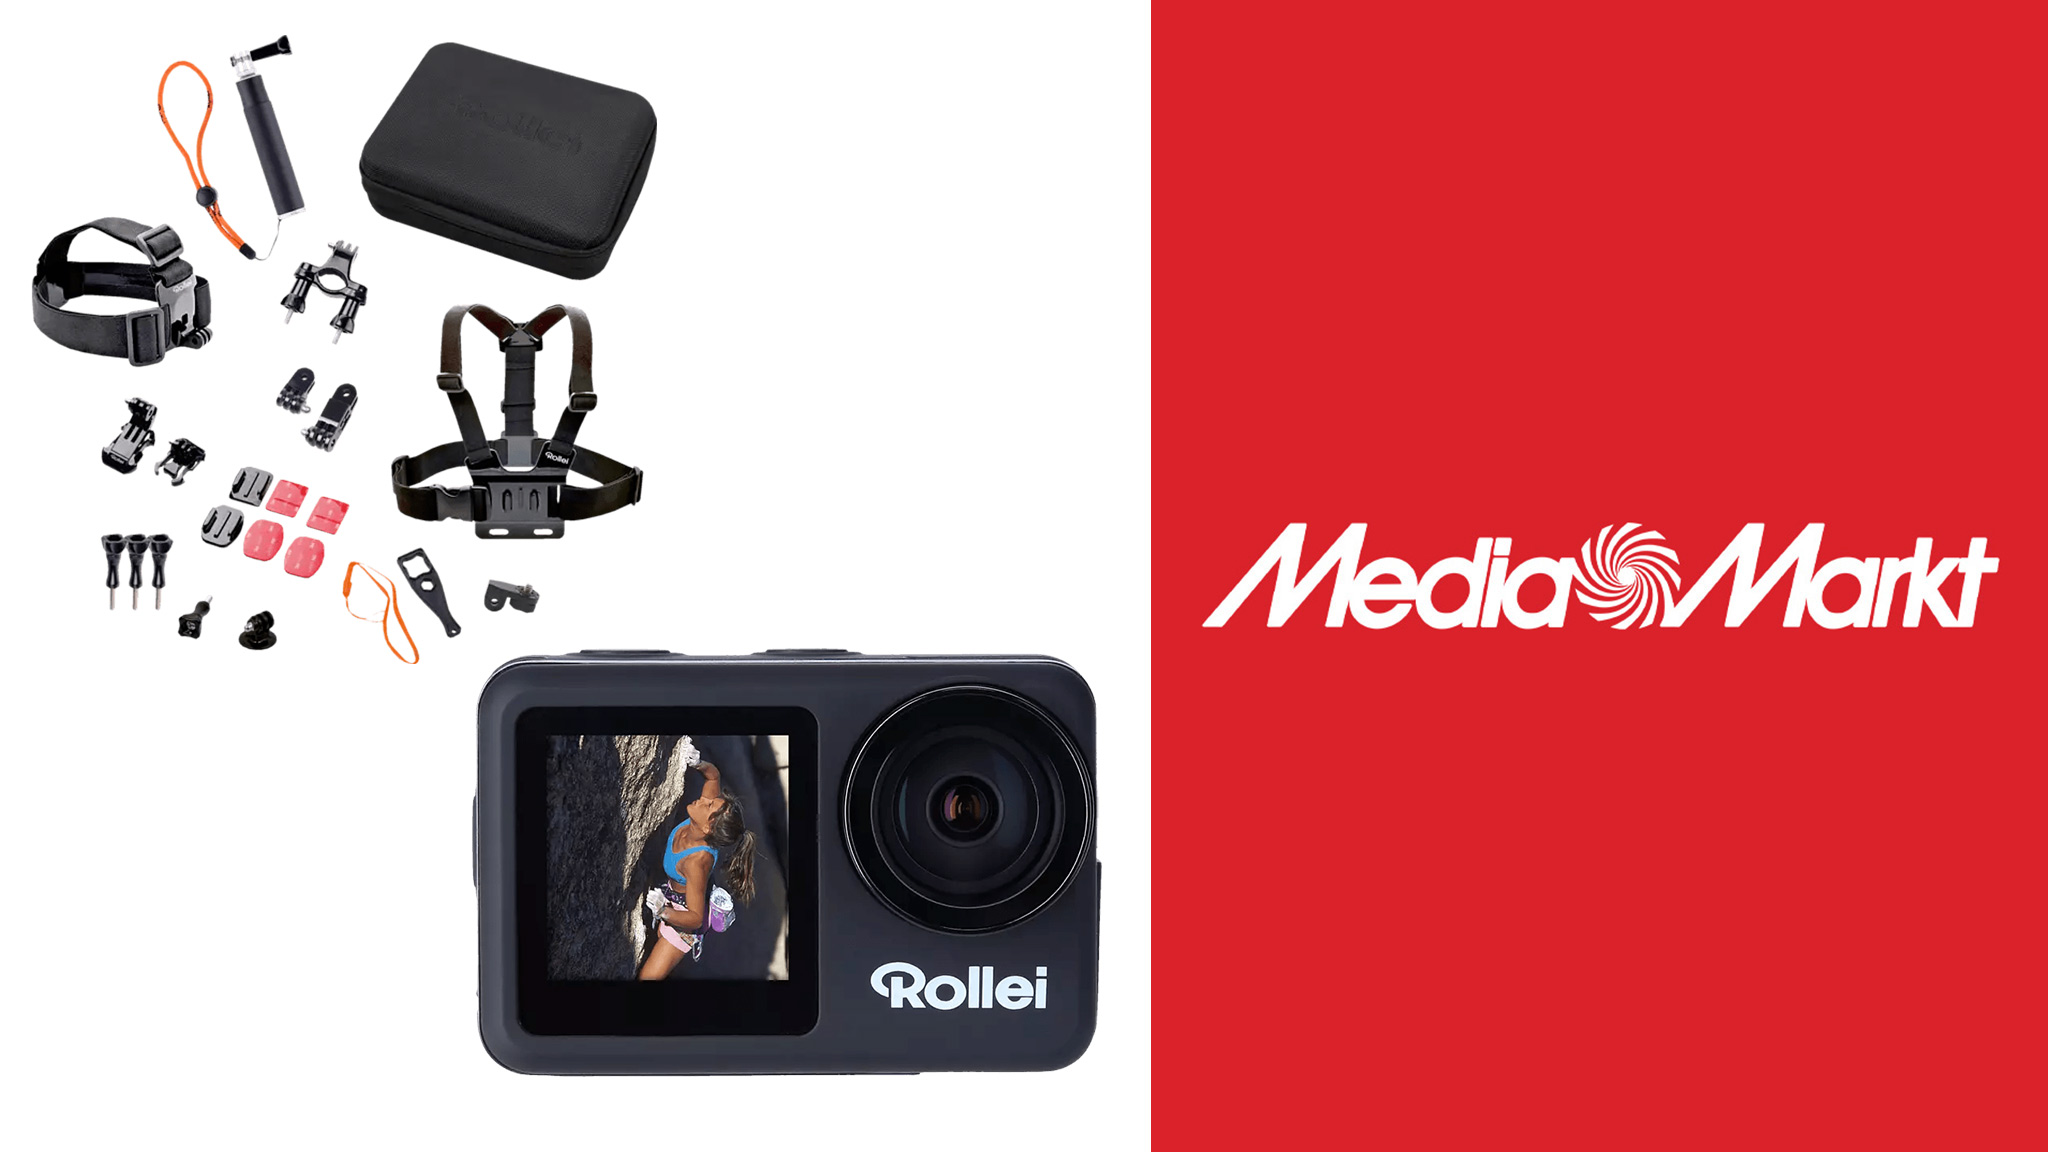 Media-Markt-Action-Cam-Angebot